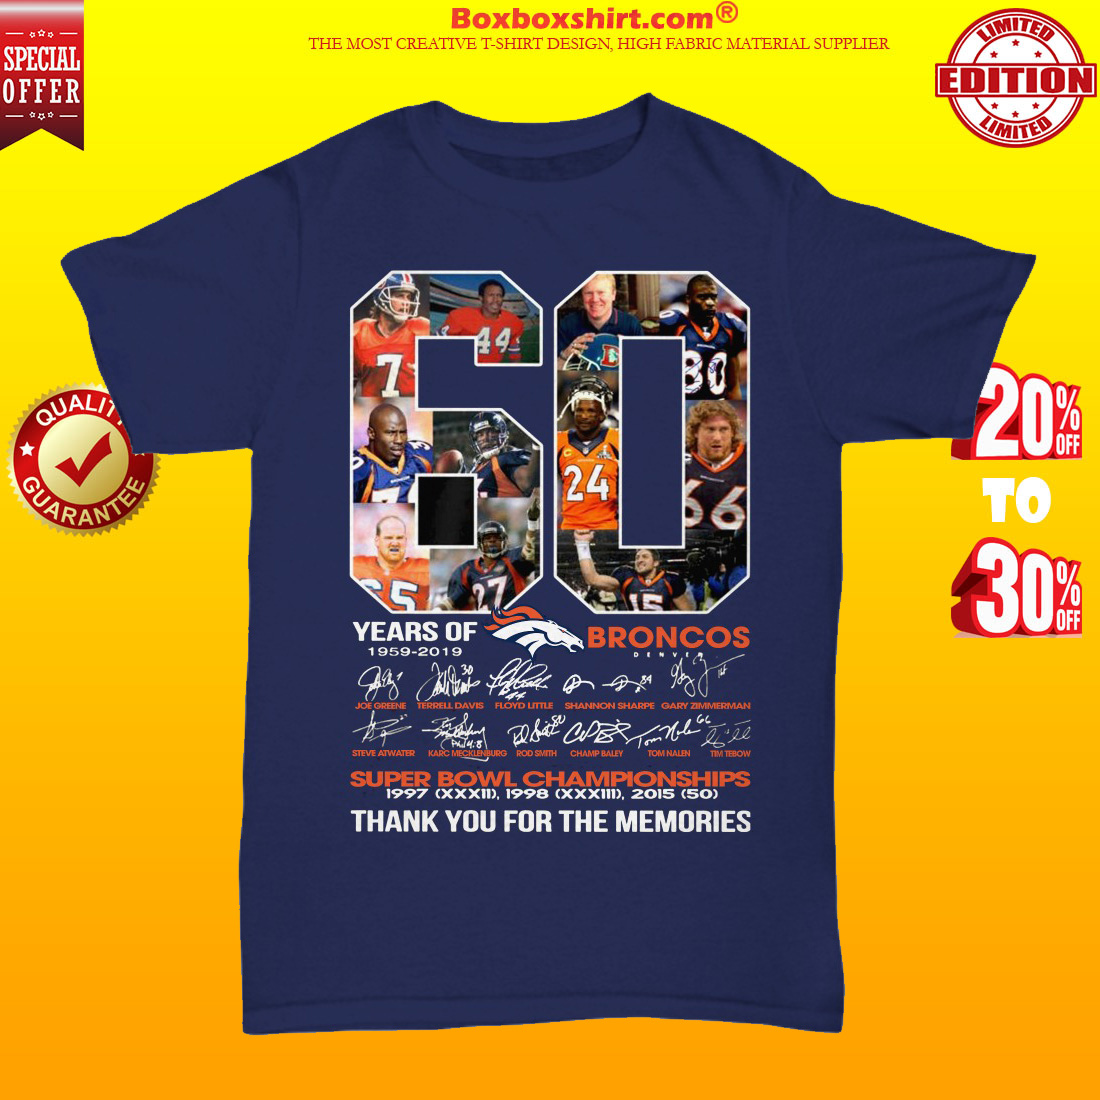 60 years of Broncos 1959 2019 thank you for the memories unisex tee shirt